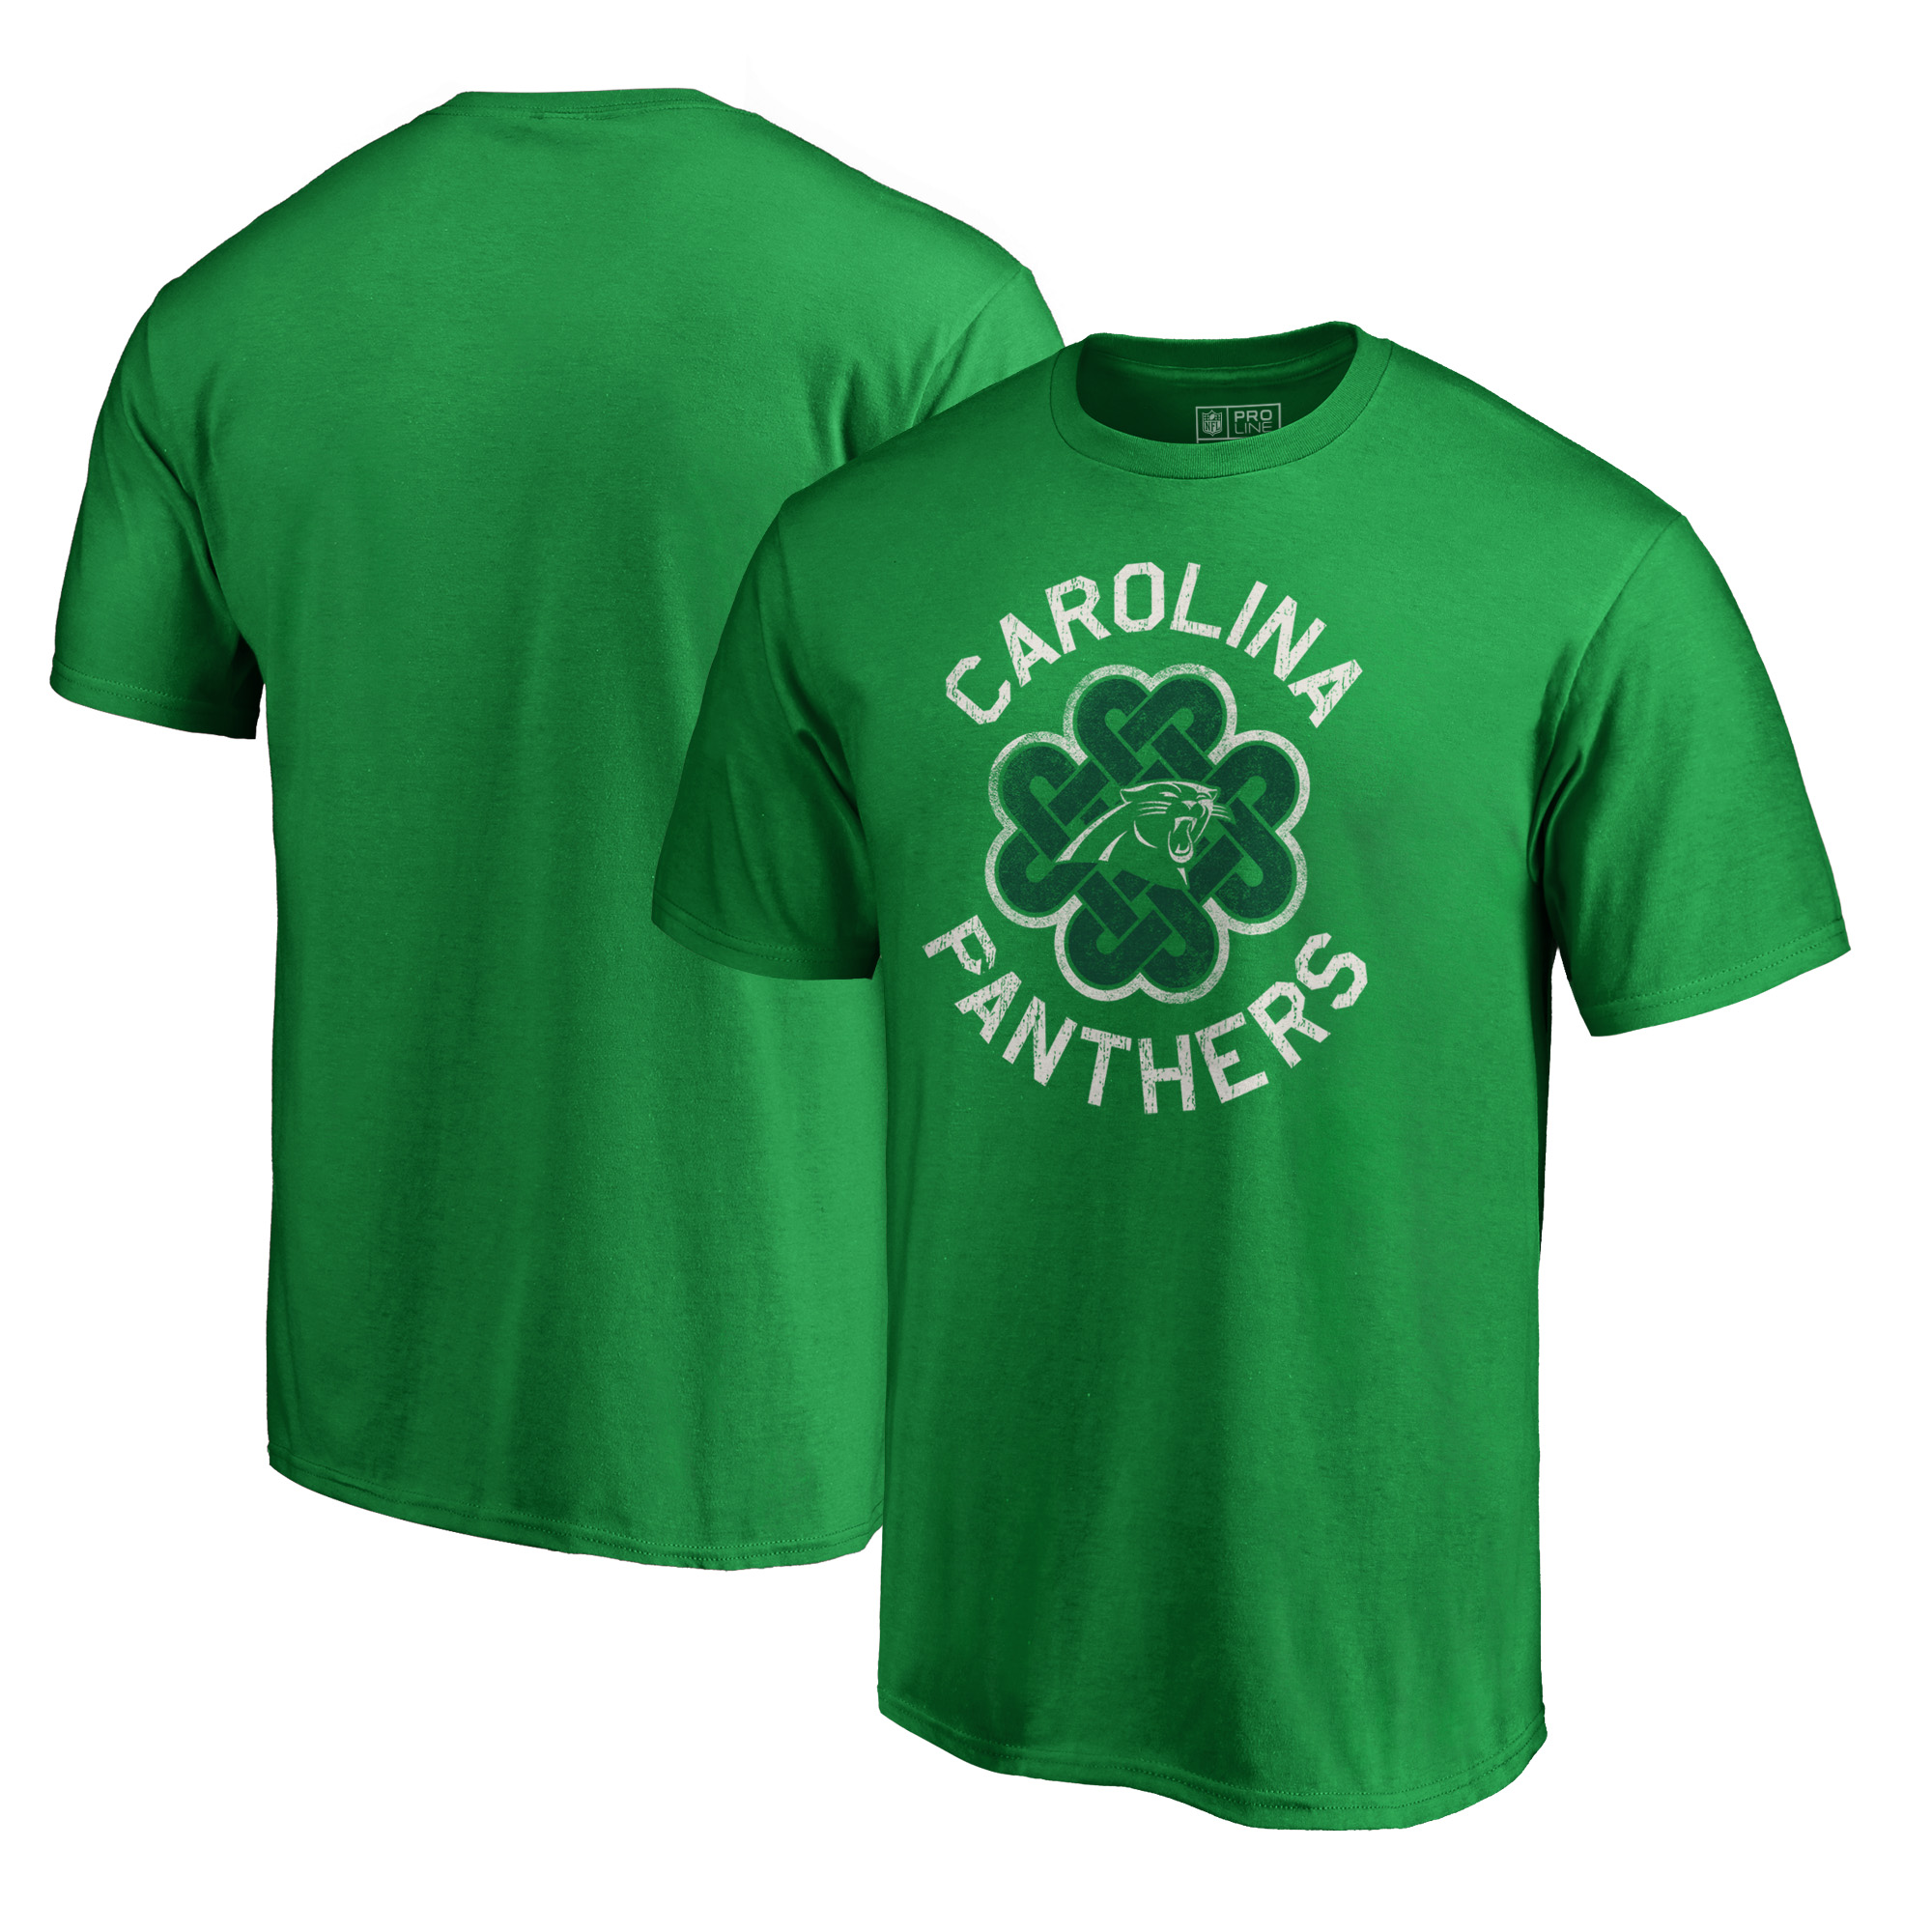 Carolina Panthers NFL Pro Line by Fanatics Branded Big & Tall St. Patrick's Day Luck Tradition T-Shirt - Green